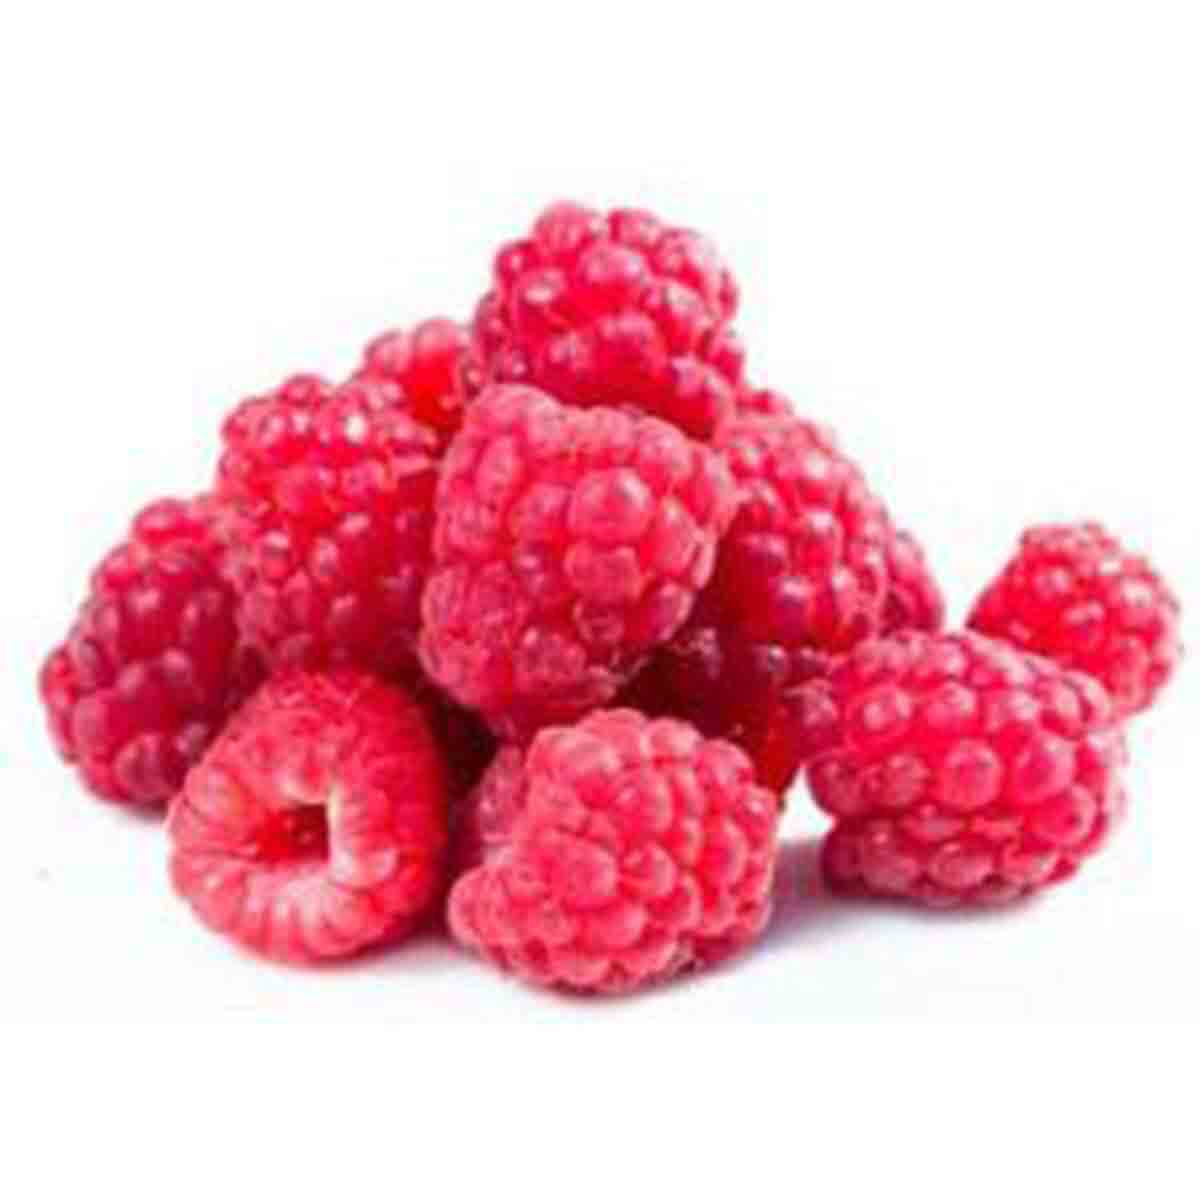 8 Natural Weight Loss Supplements, Raspberry Ketones